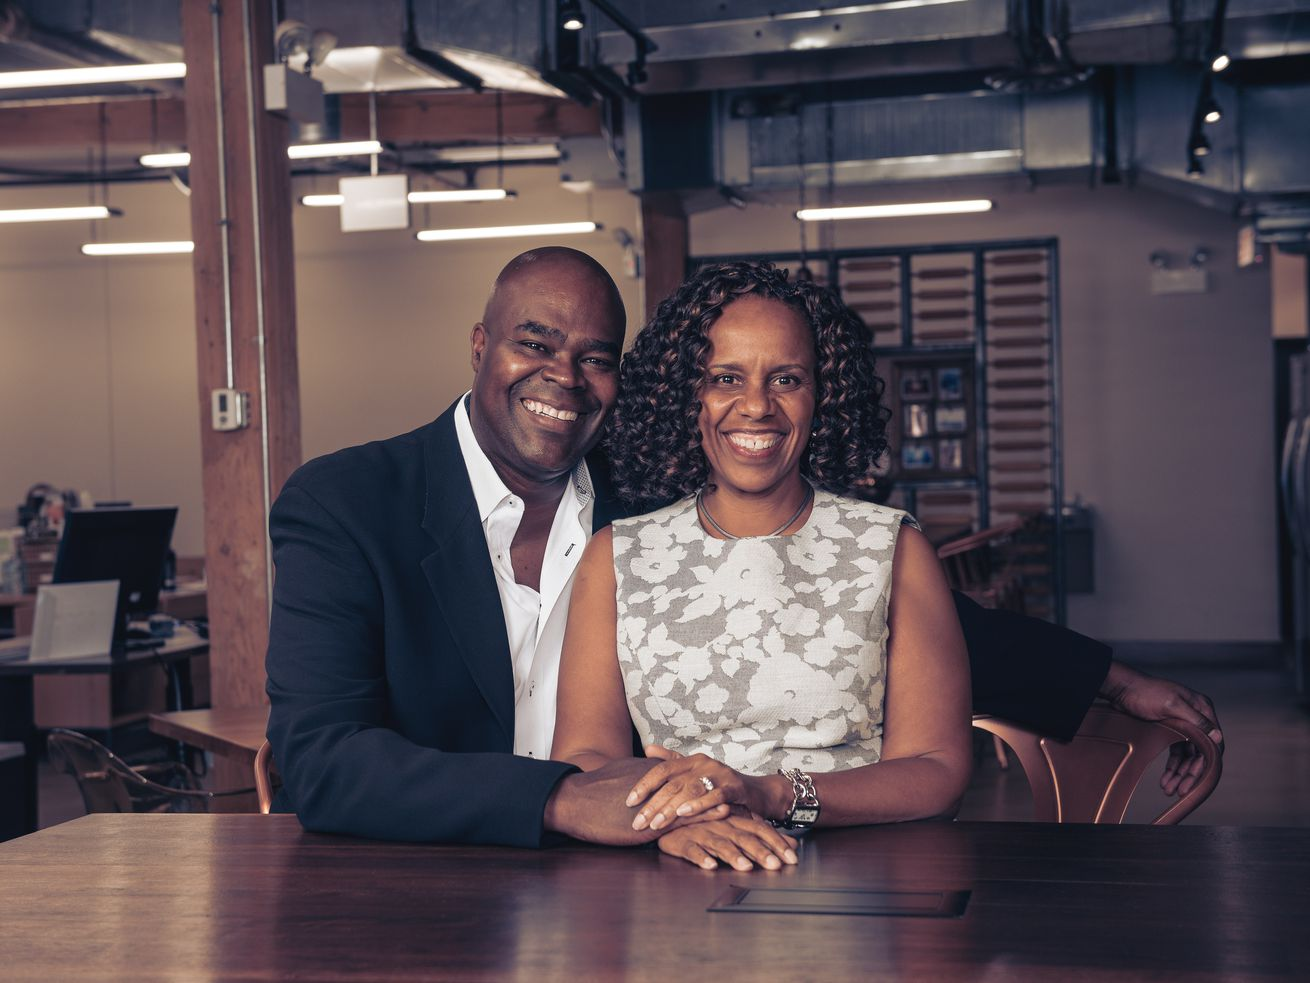 """Former McDonald's CEO Don Thompson and wife Elizabeth launched The Cleveland Avenue Foundation for Education to support diversity in teaching, and economic mobility in the Black community. On April 28, they'll dole out $1 million to each of five organizations achieving those goals nationwide, in an online event headlined by luminaries including Common and Earvin """"Magic"""" Johnson."""